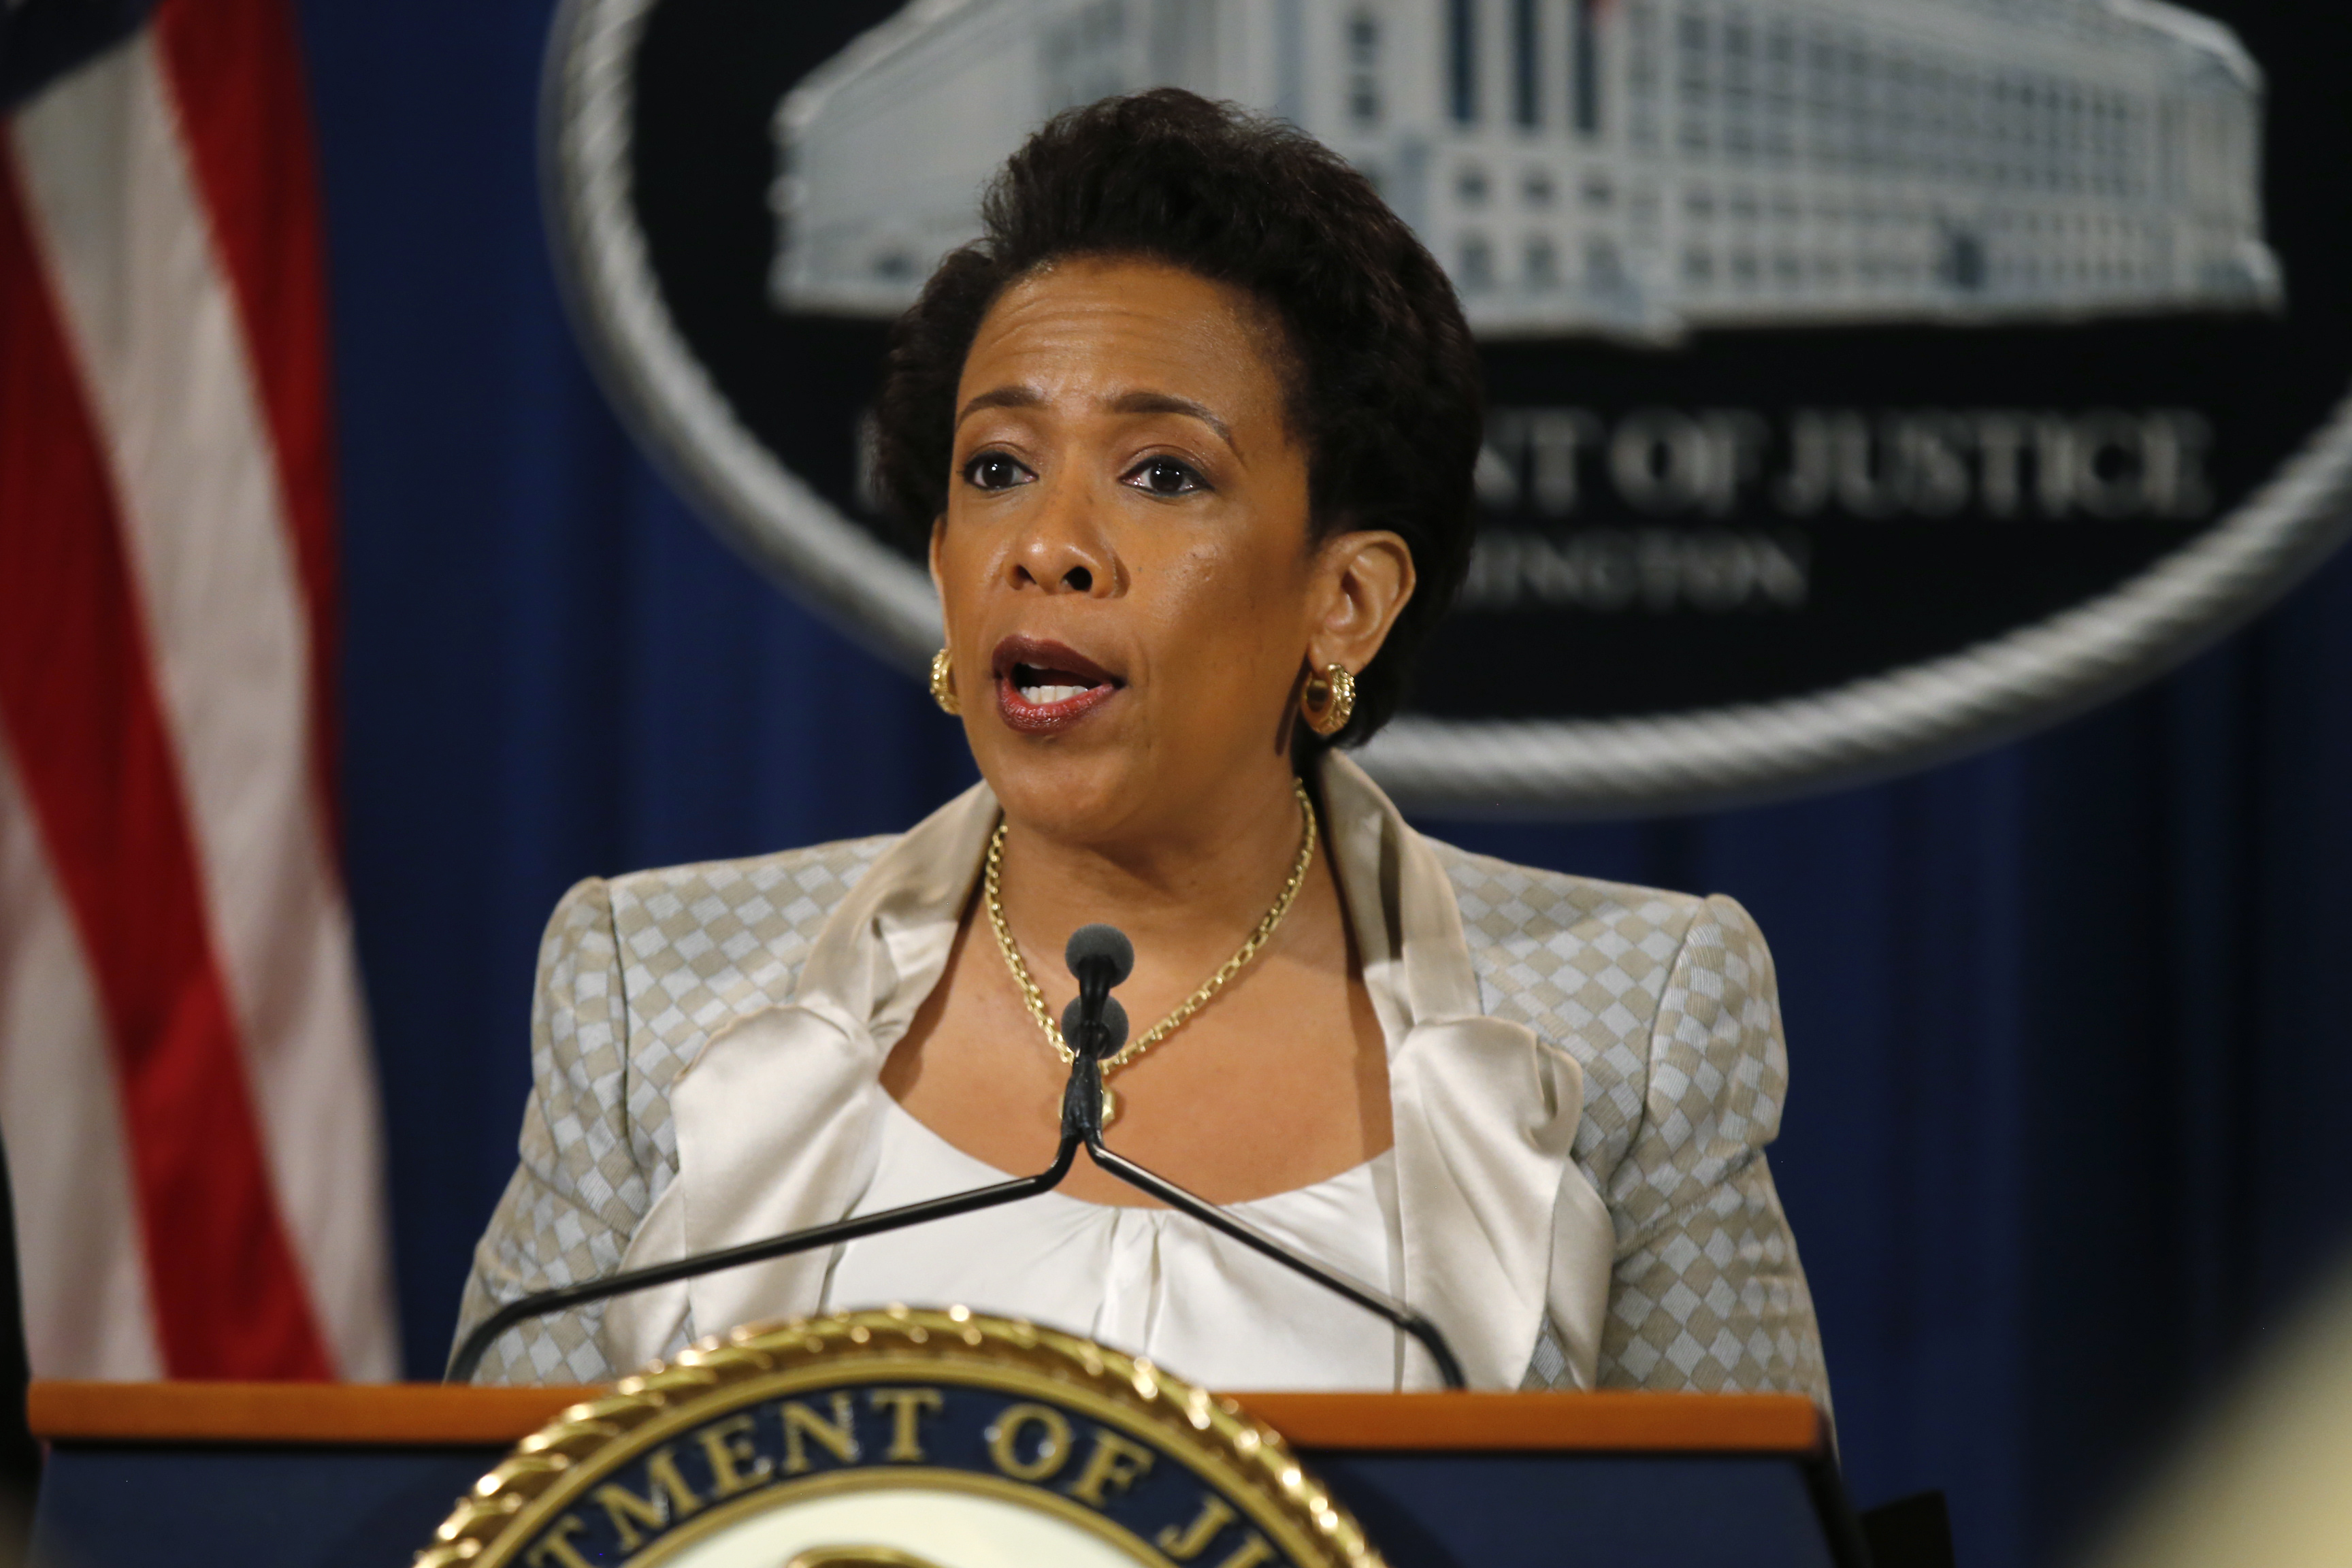 Justice Department launches investigation of Baltimore police